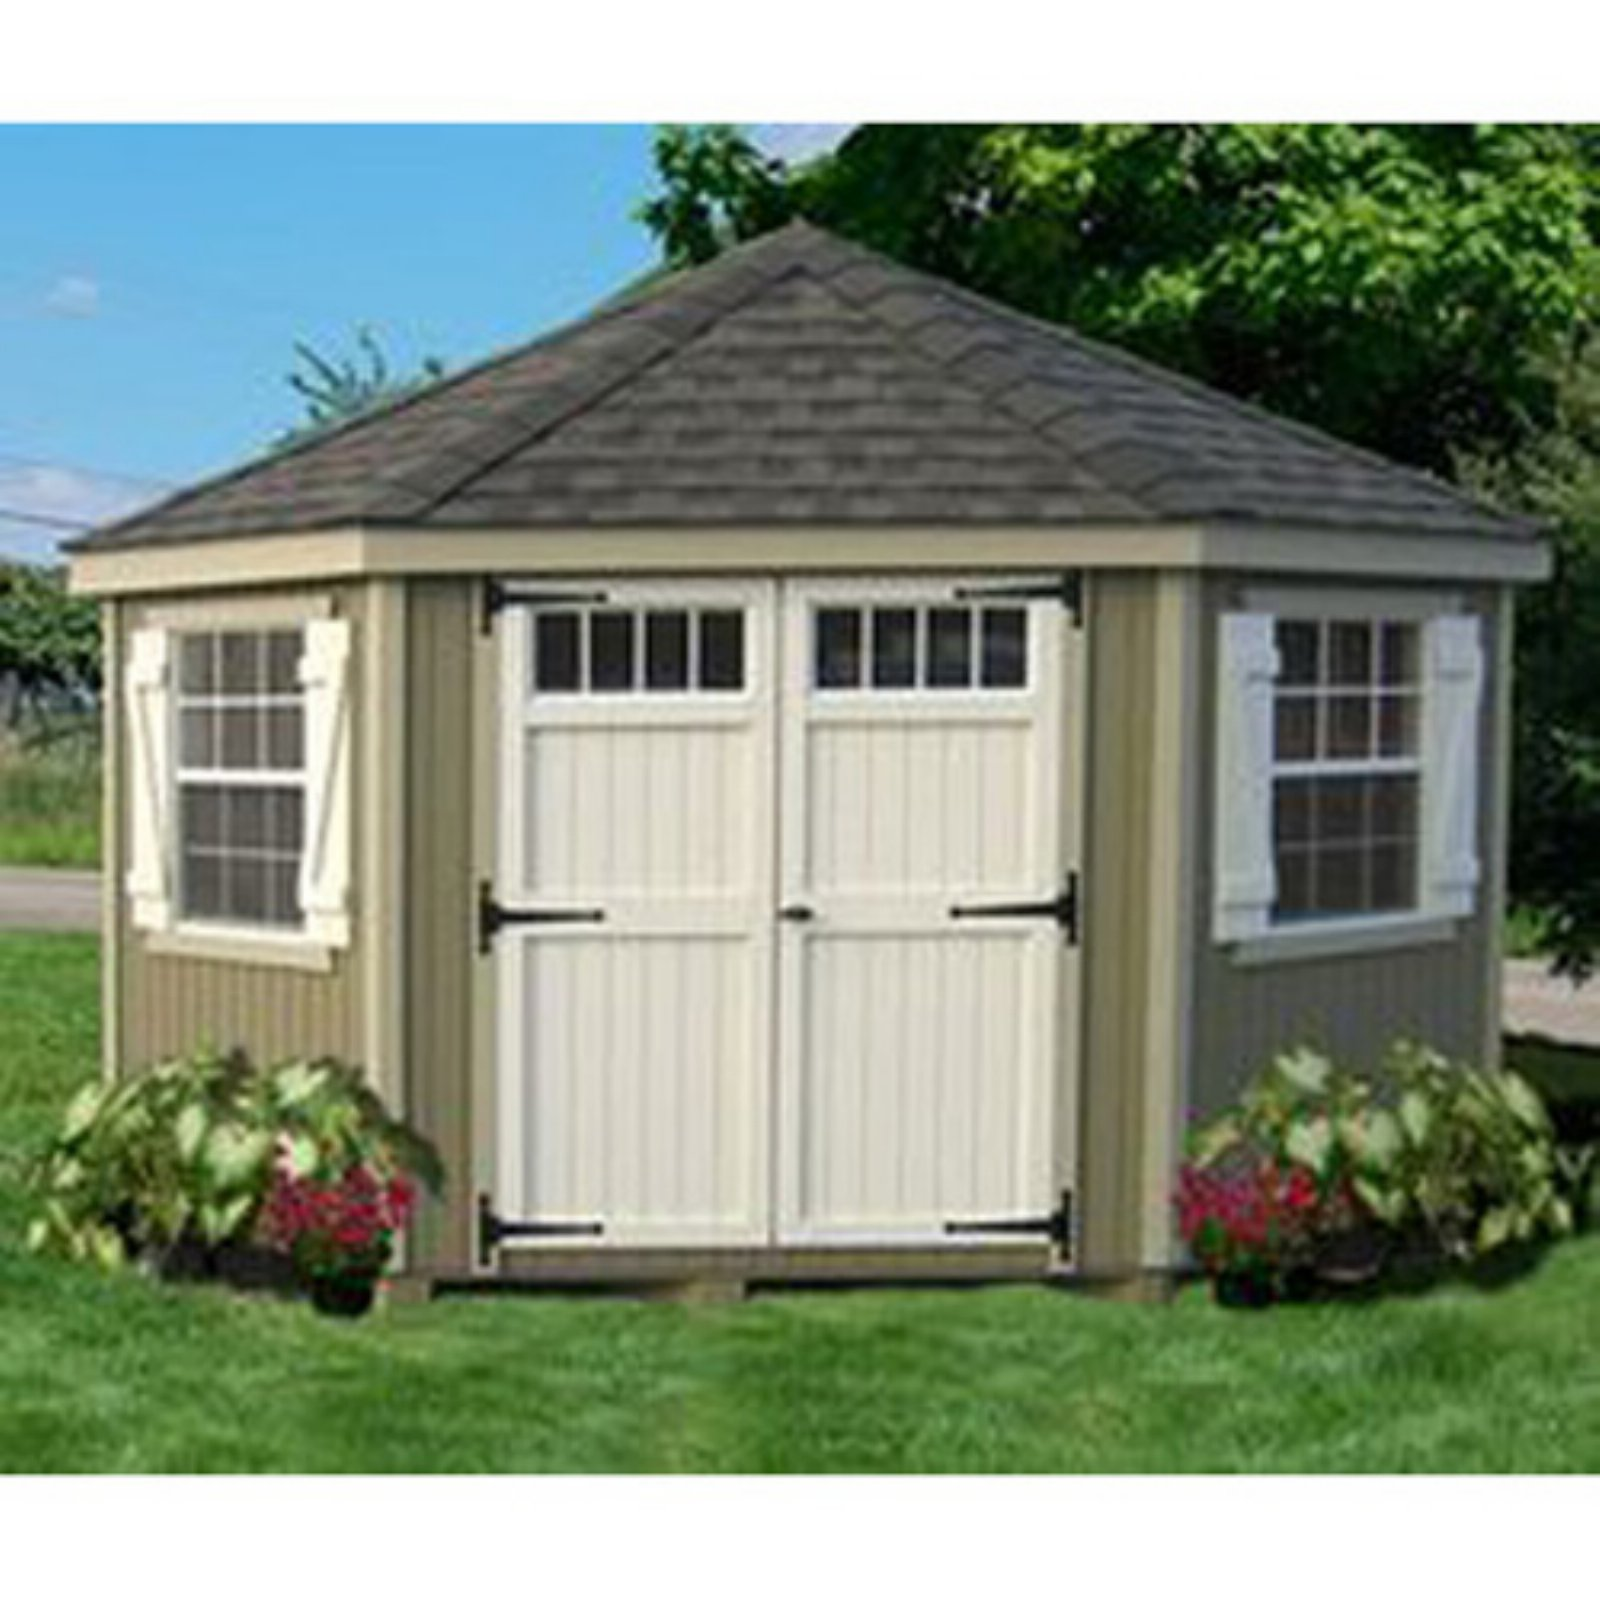 Little Cottage 5-Sided Colonial Panelized Garden Shed with Transom Windows and Optional Floor Kit